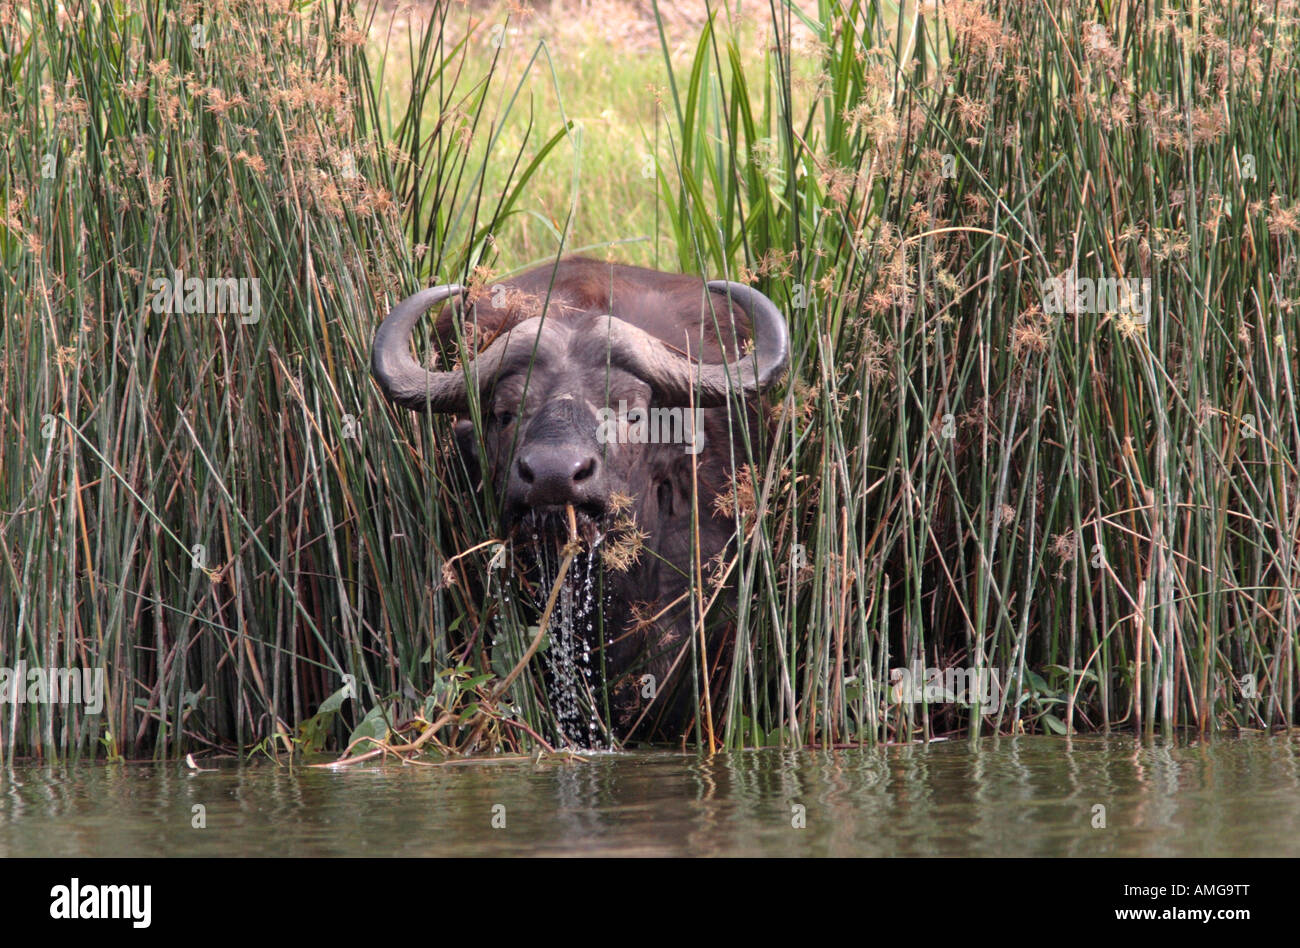 buffalo at waters edge, Syncerus caffer - Stock Image